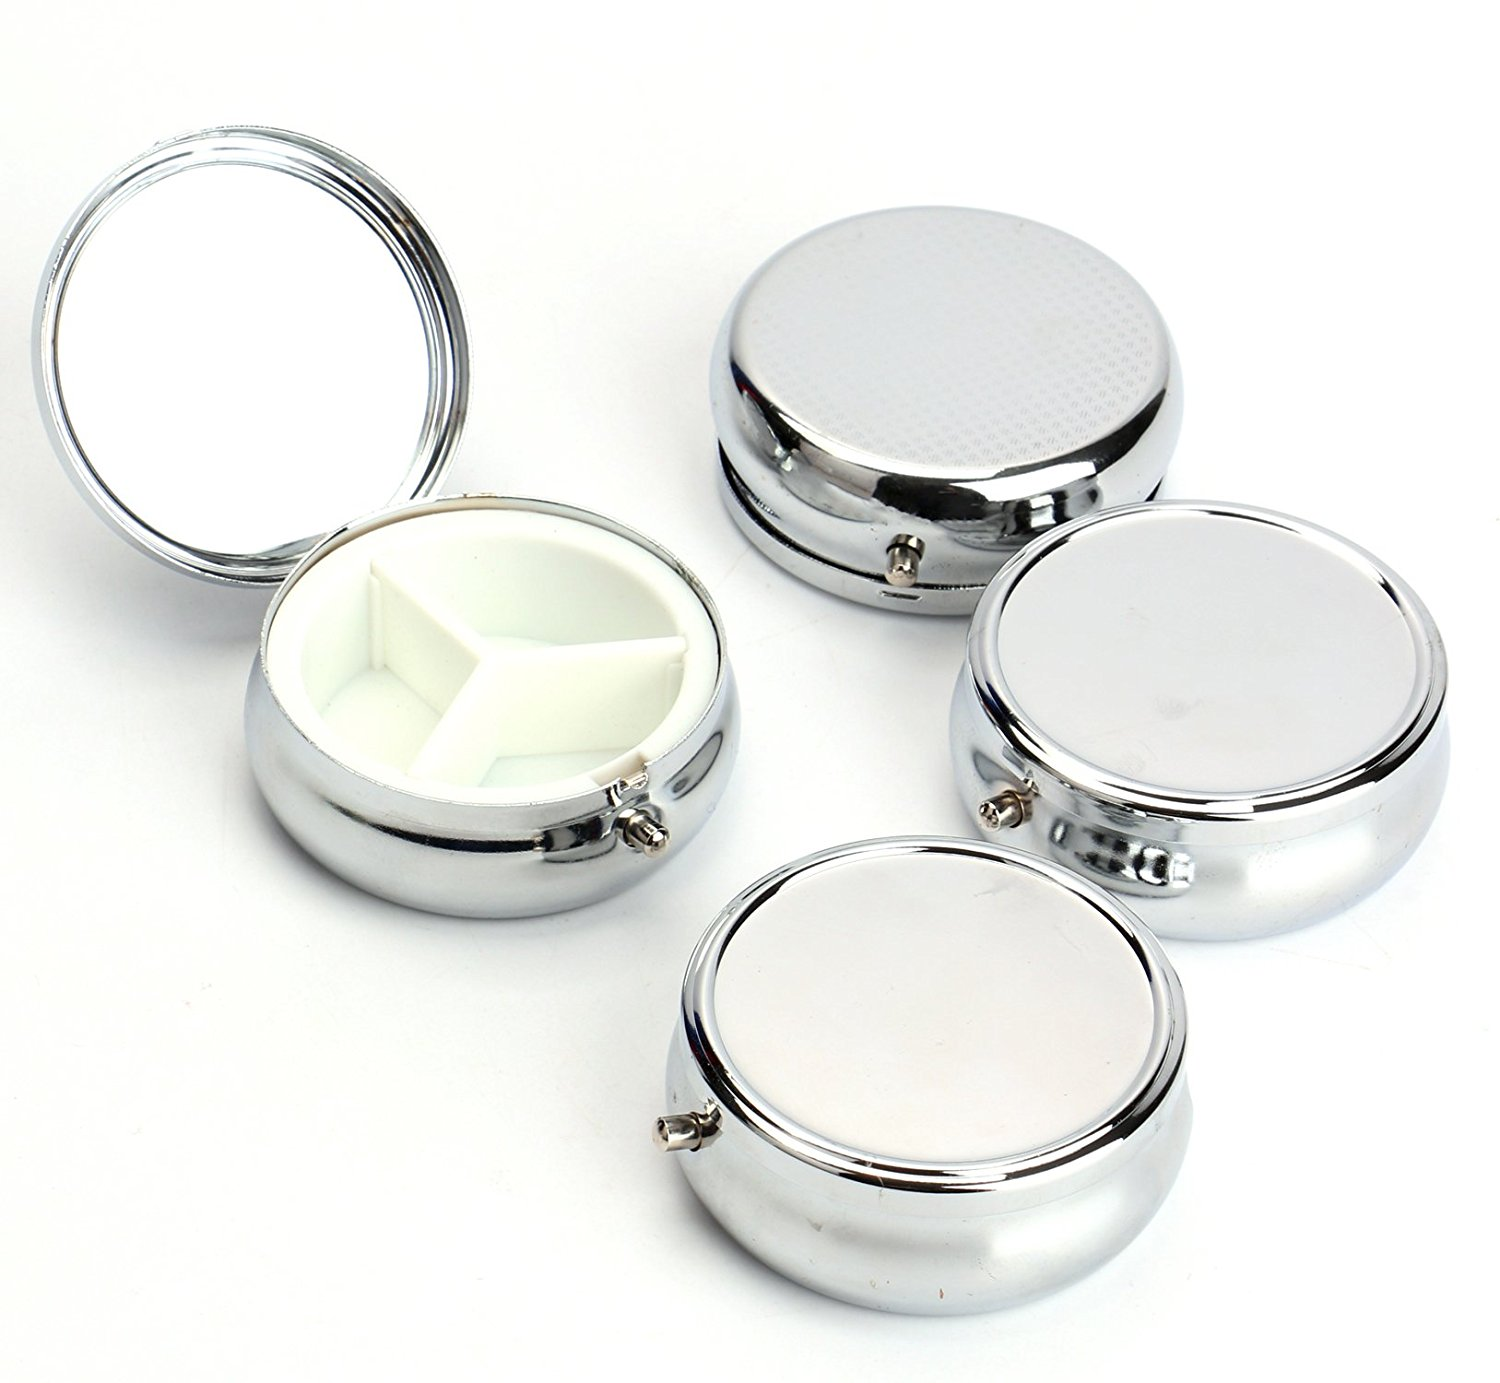 1Pcs Metal Round Silver Tablet Pill Boxes Holder 3 Compartment Medicine Case Container Small Hearth Makeup Storage Organizer